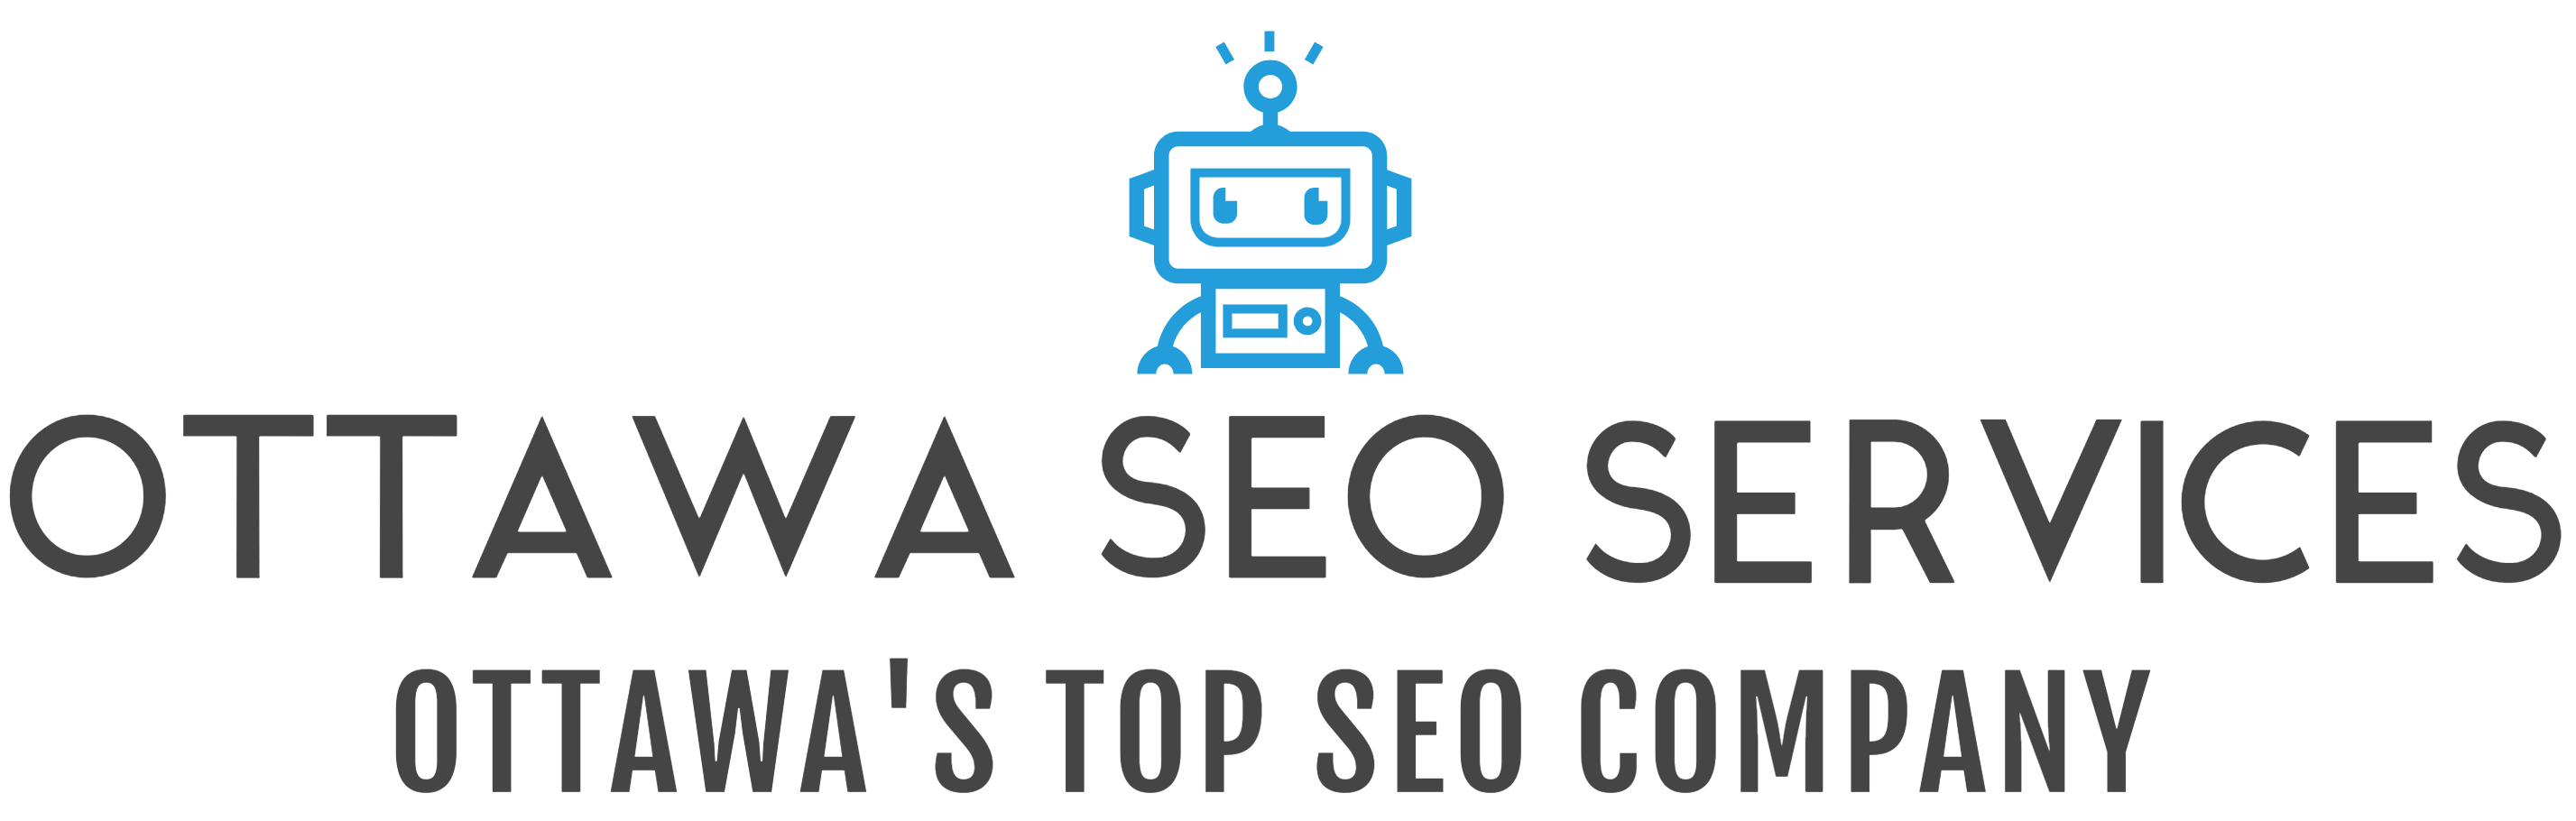 Ottawas Top Rated SEO Company | OttawaSEO.net